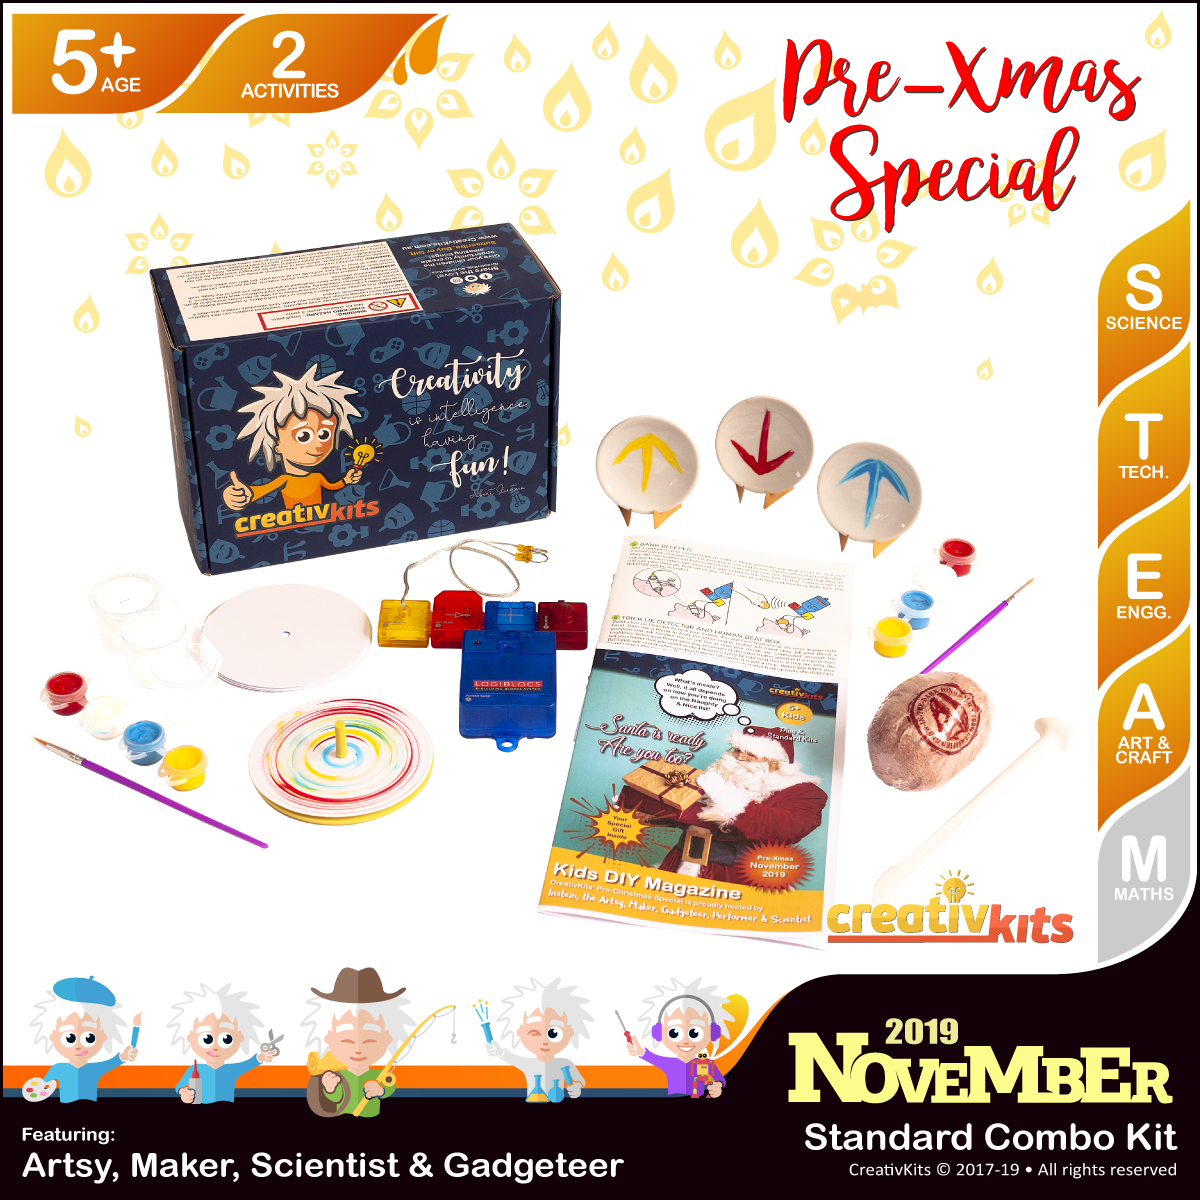 November Standard Combo Kit • Age 5 plus • BYO Smart Circuits and MiniPlates paintings